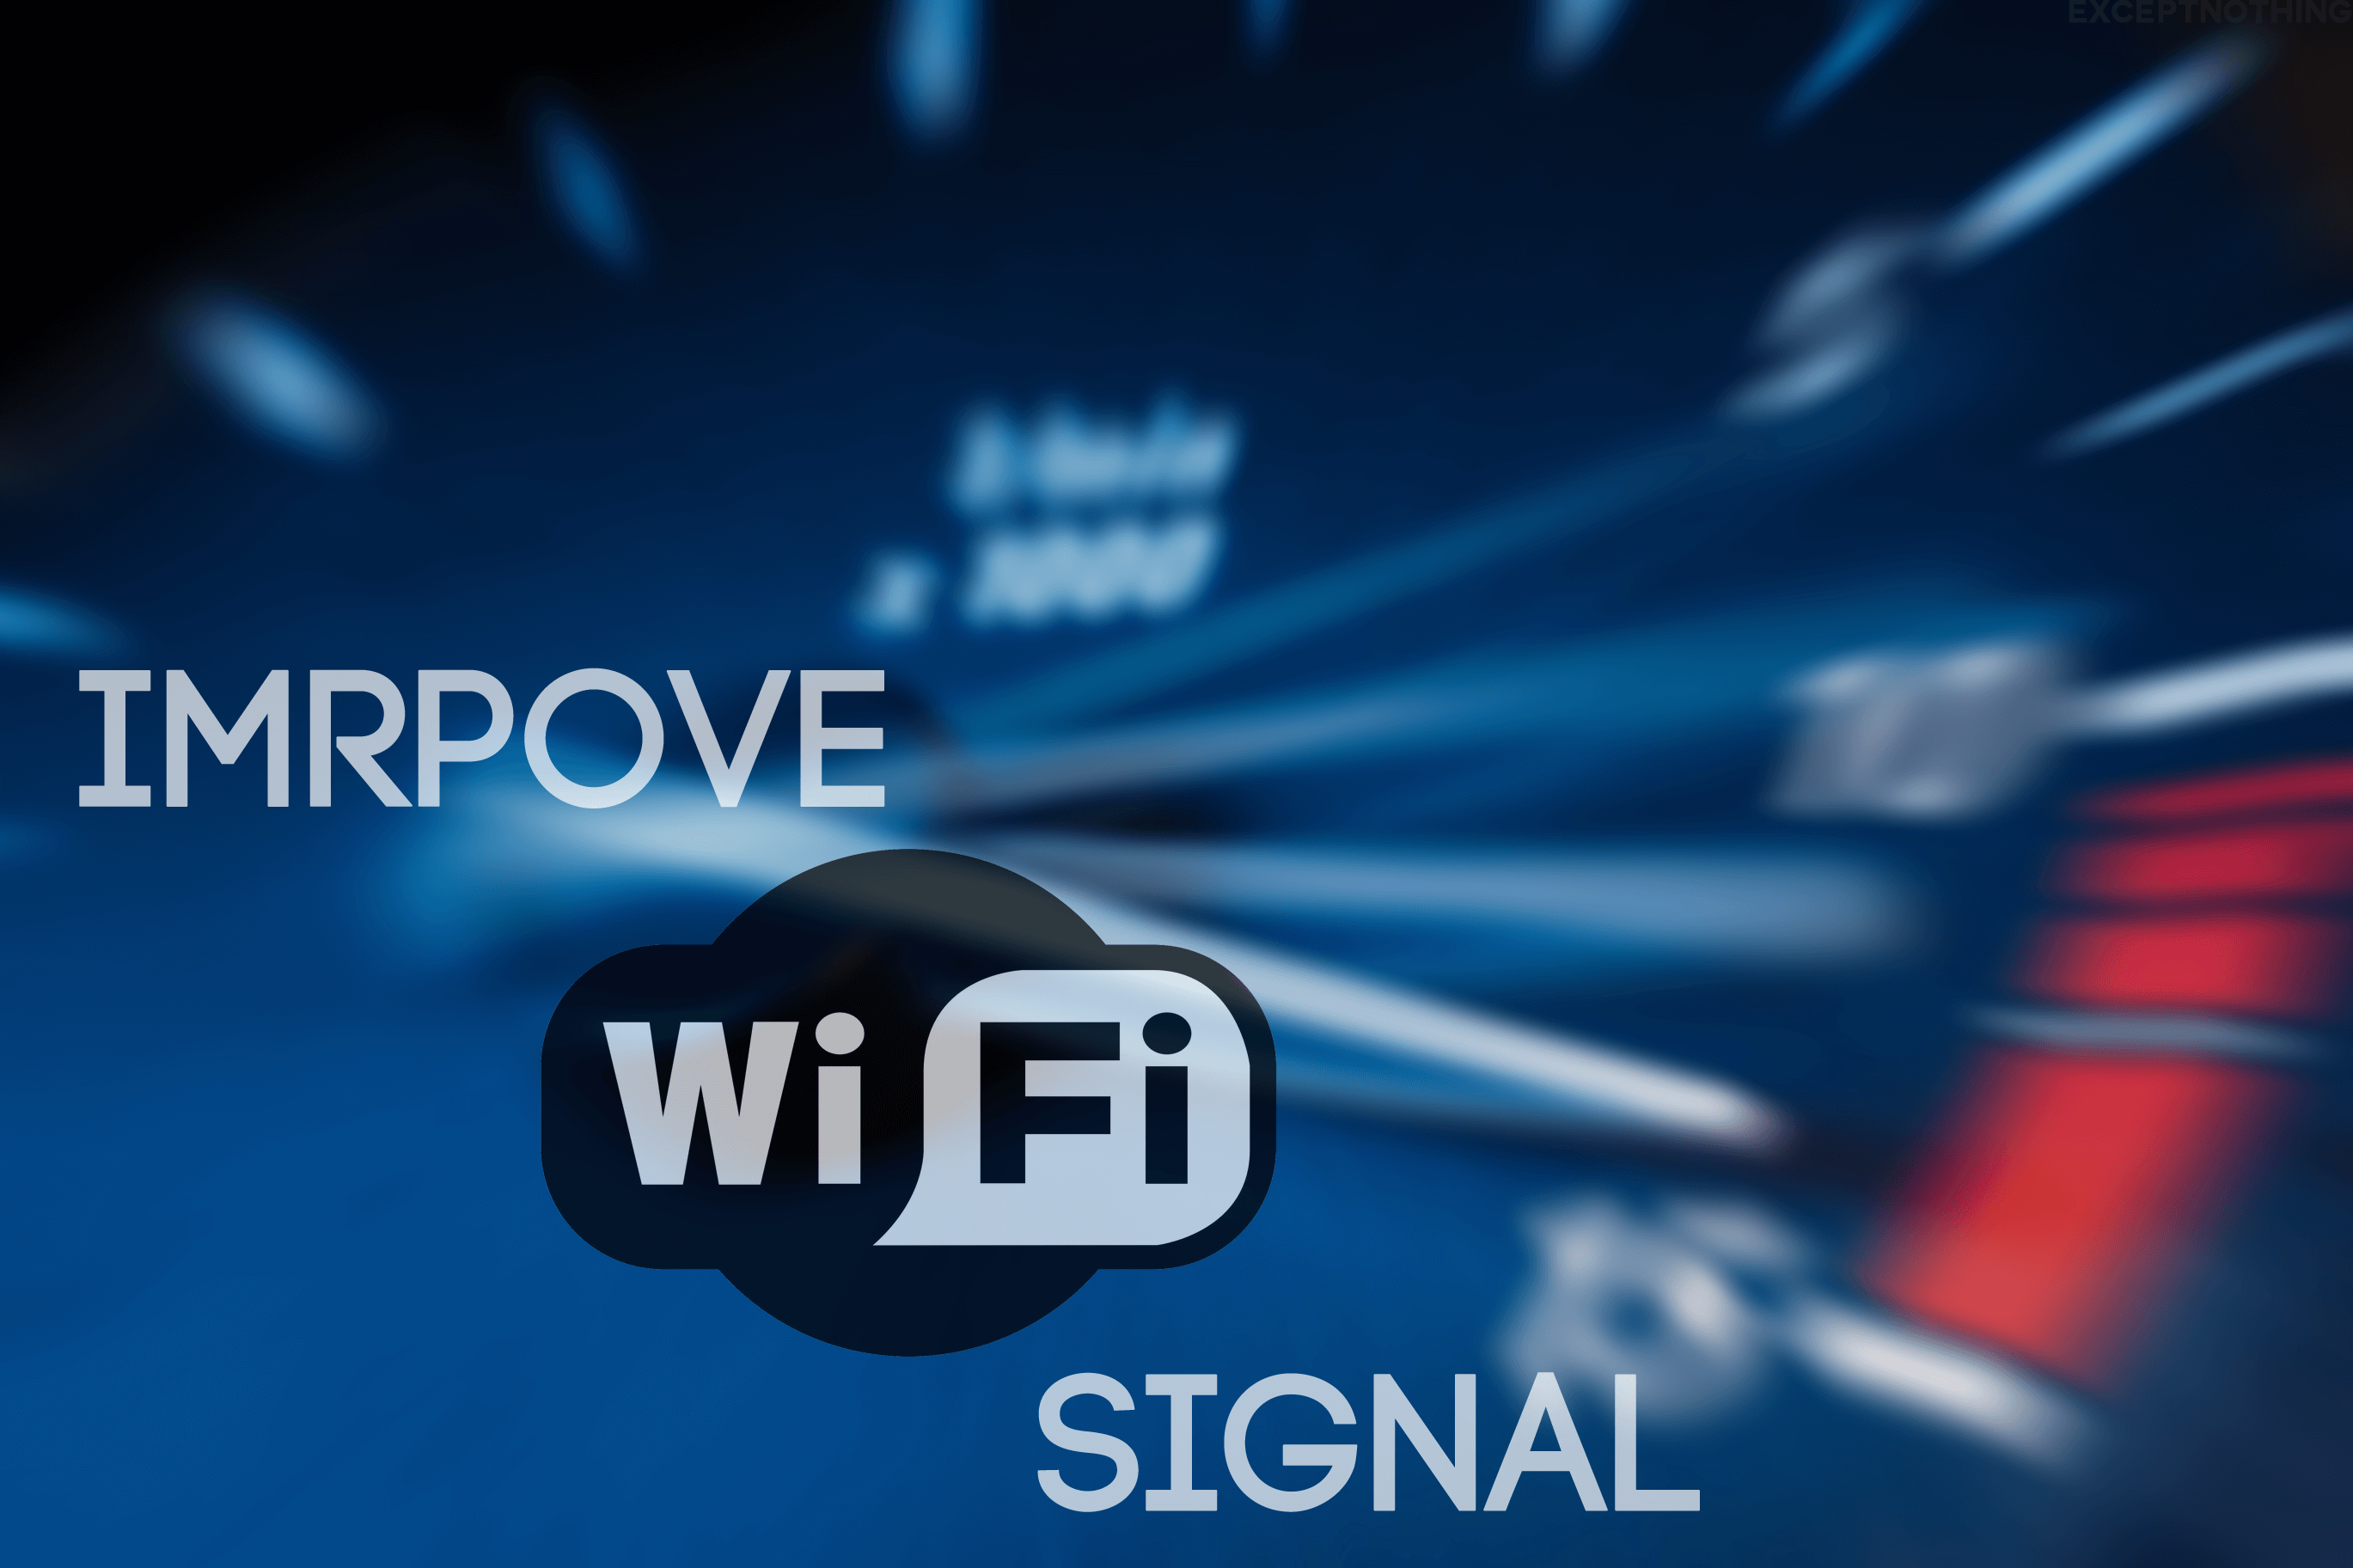 Improve WiFi Signal Strength